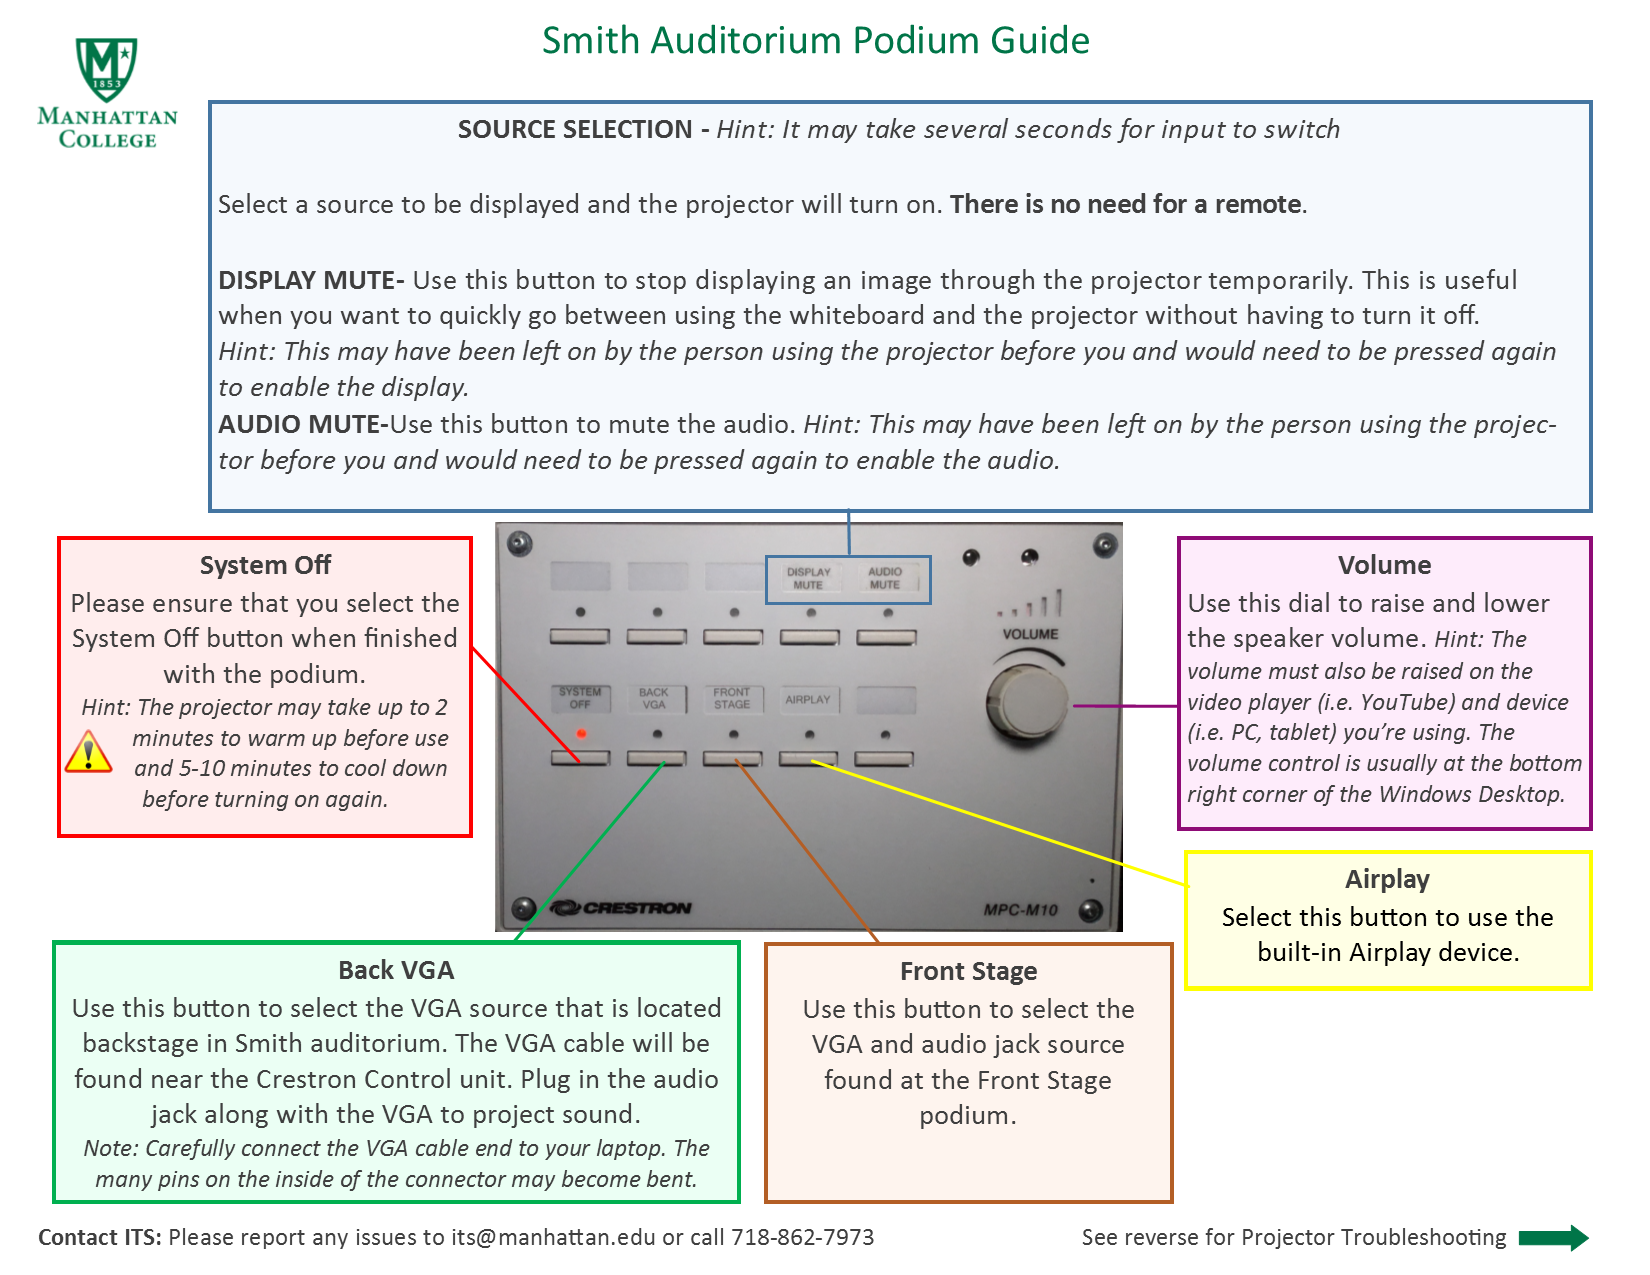 image depicting the podium guide which explains how to use the technology in the room